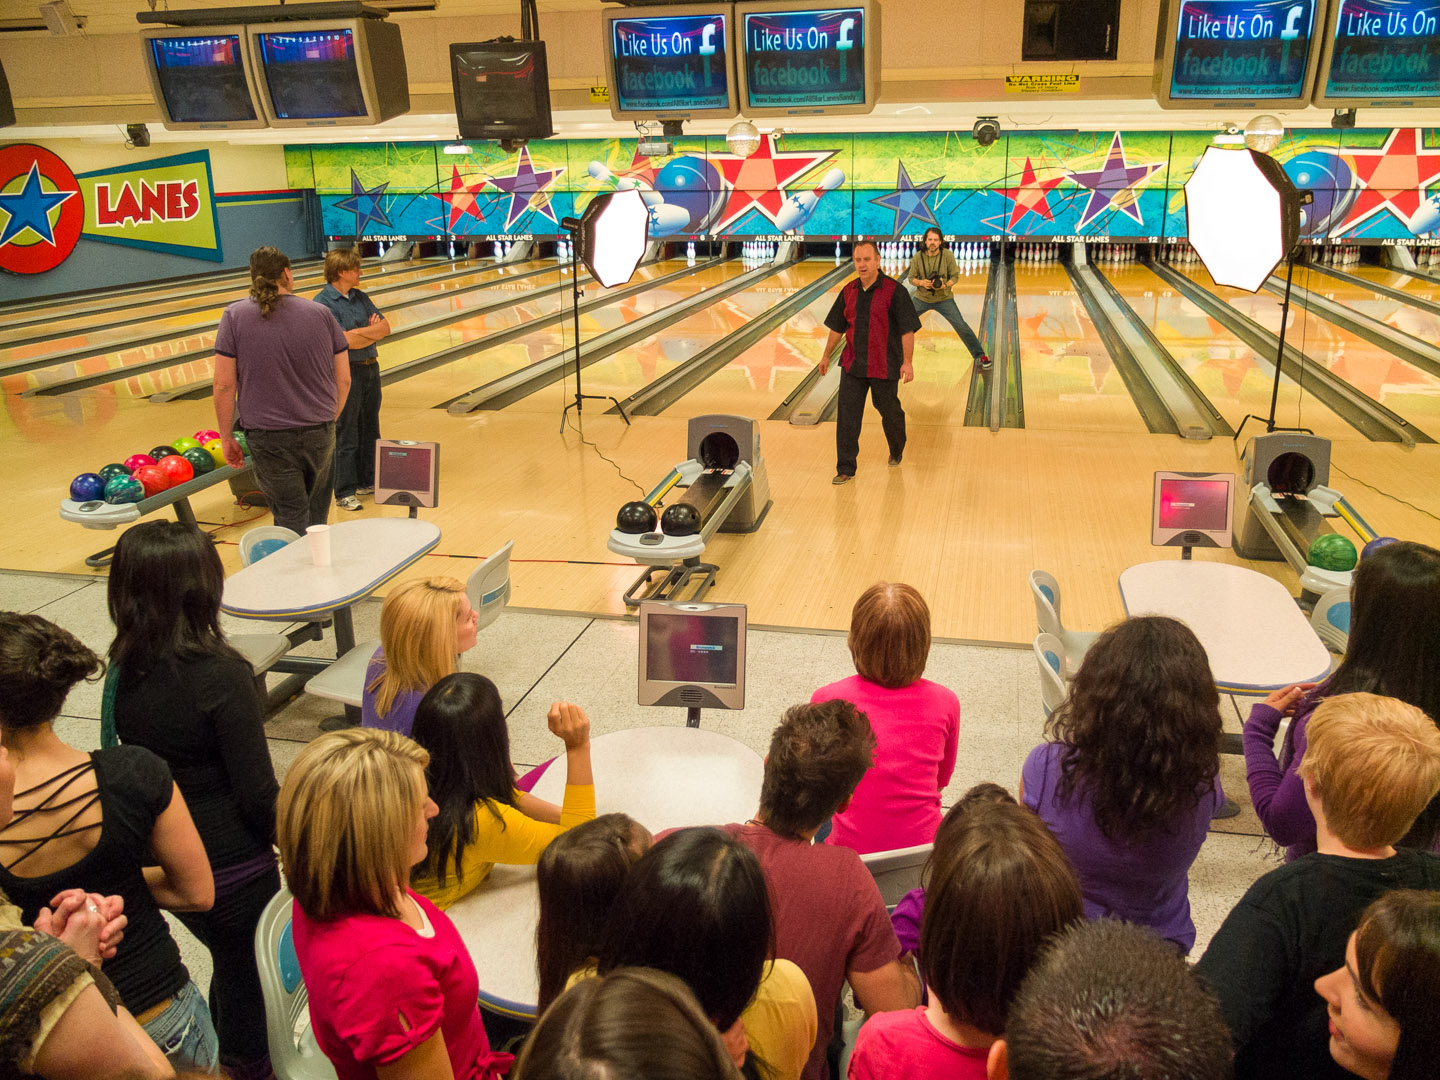 A birds eye view of the bowling shoot